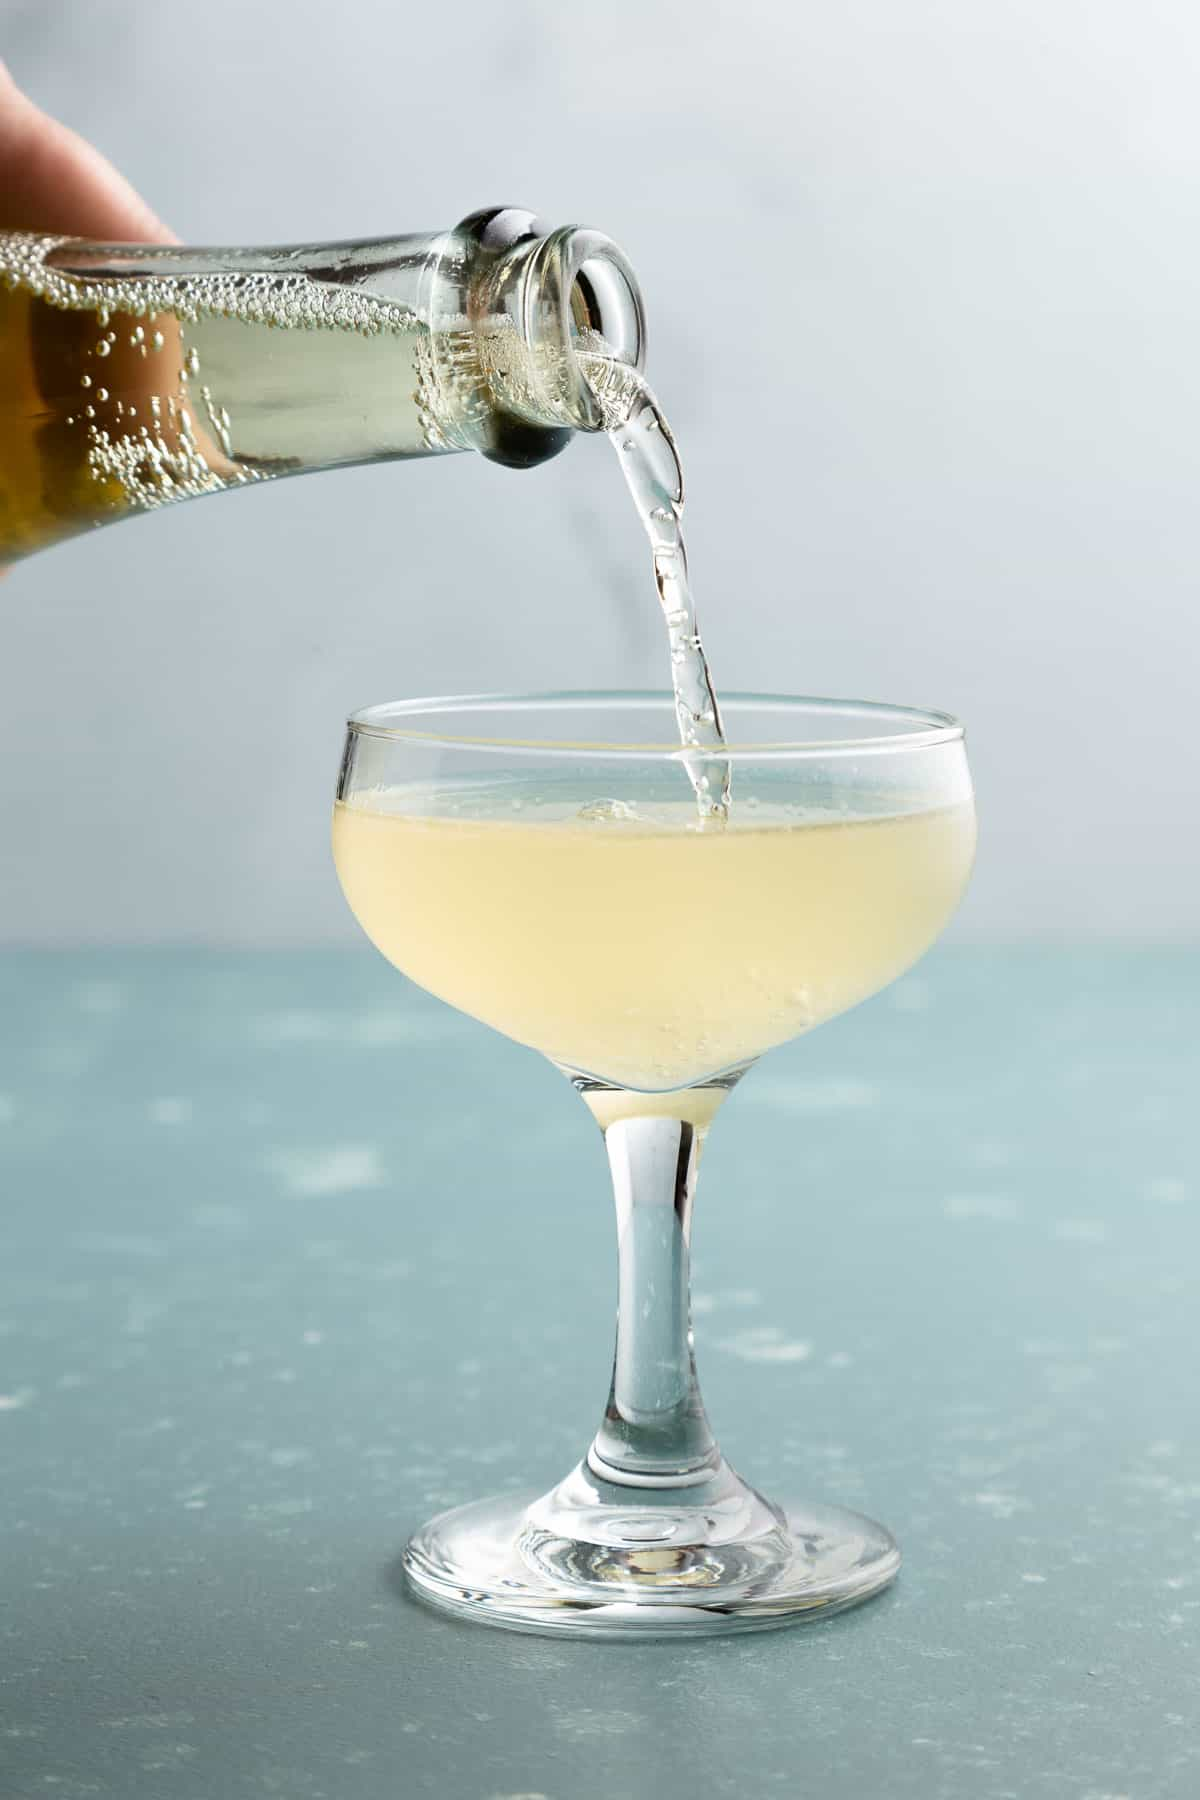 Pouring sparkling liquid into a cocktail glass